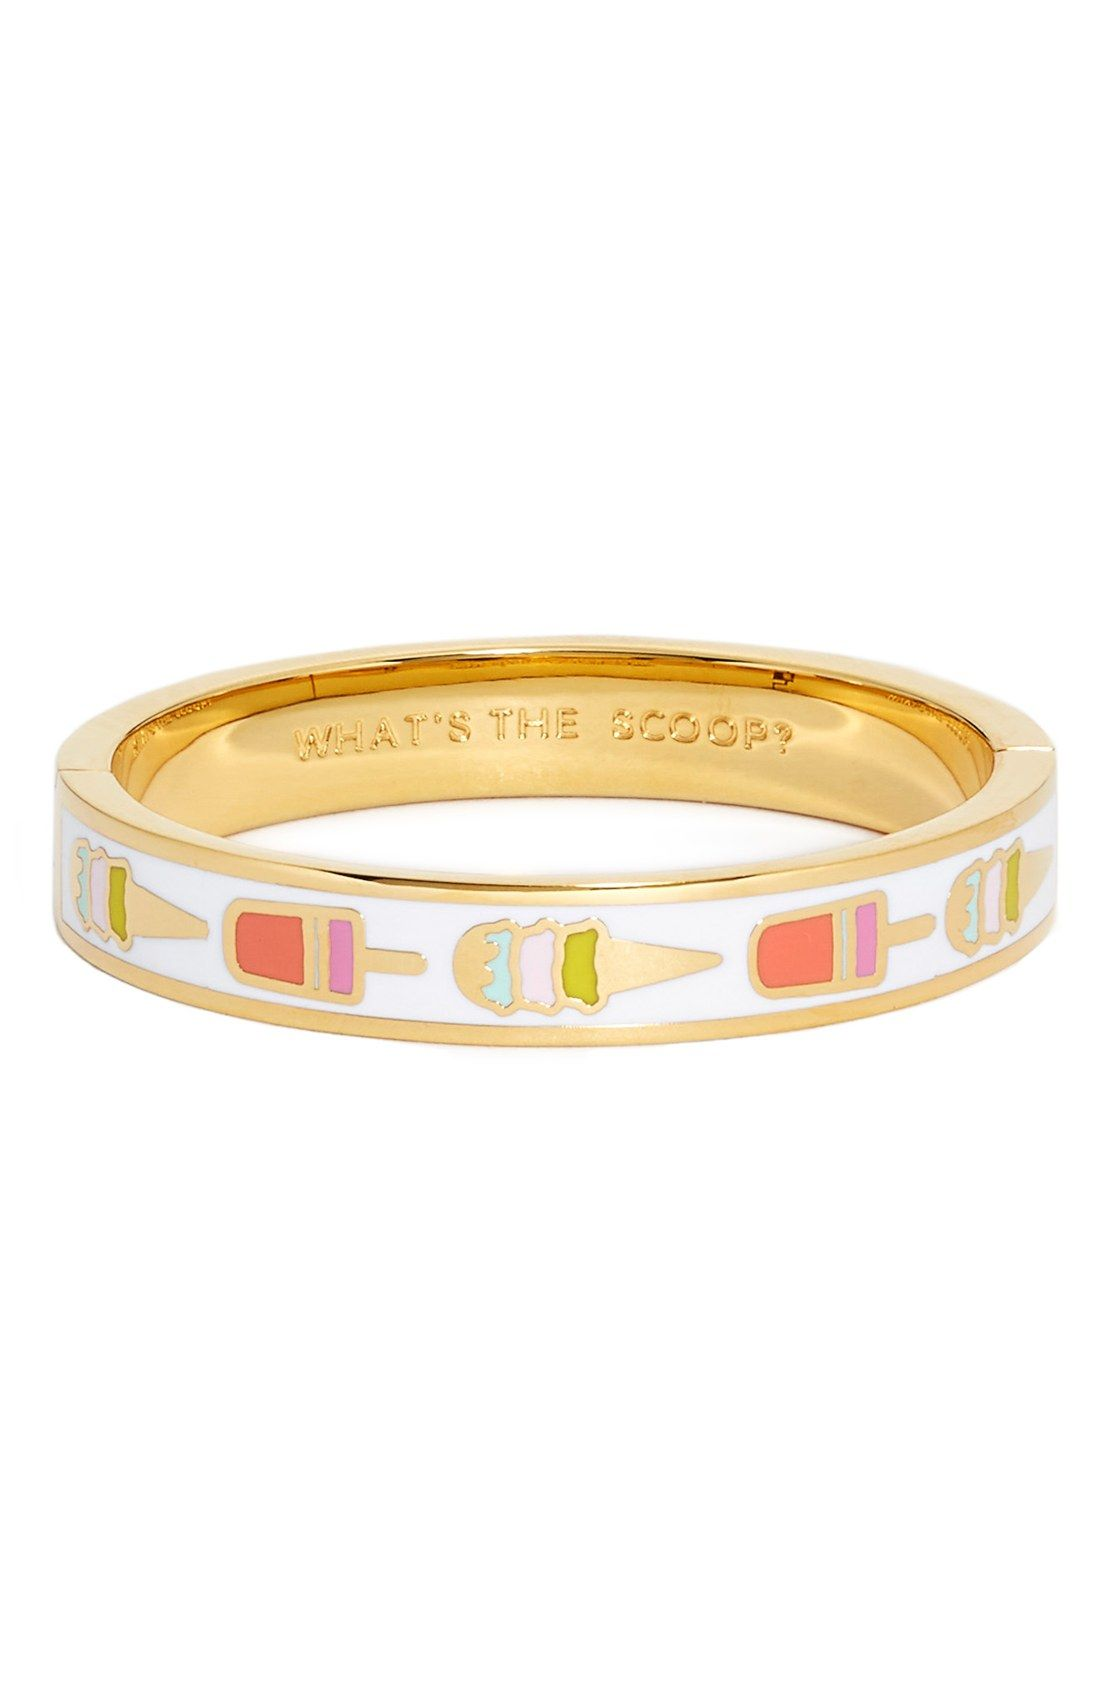 Kate Spade New York Idiom What S The Scoop Bangle Bracelet